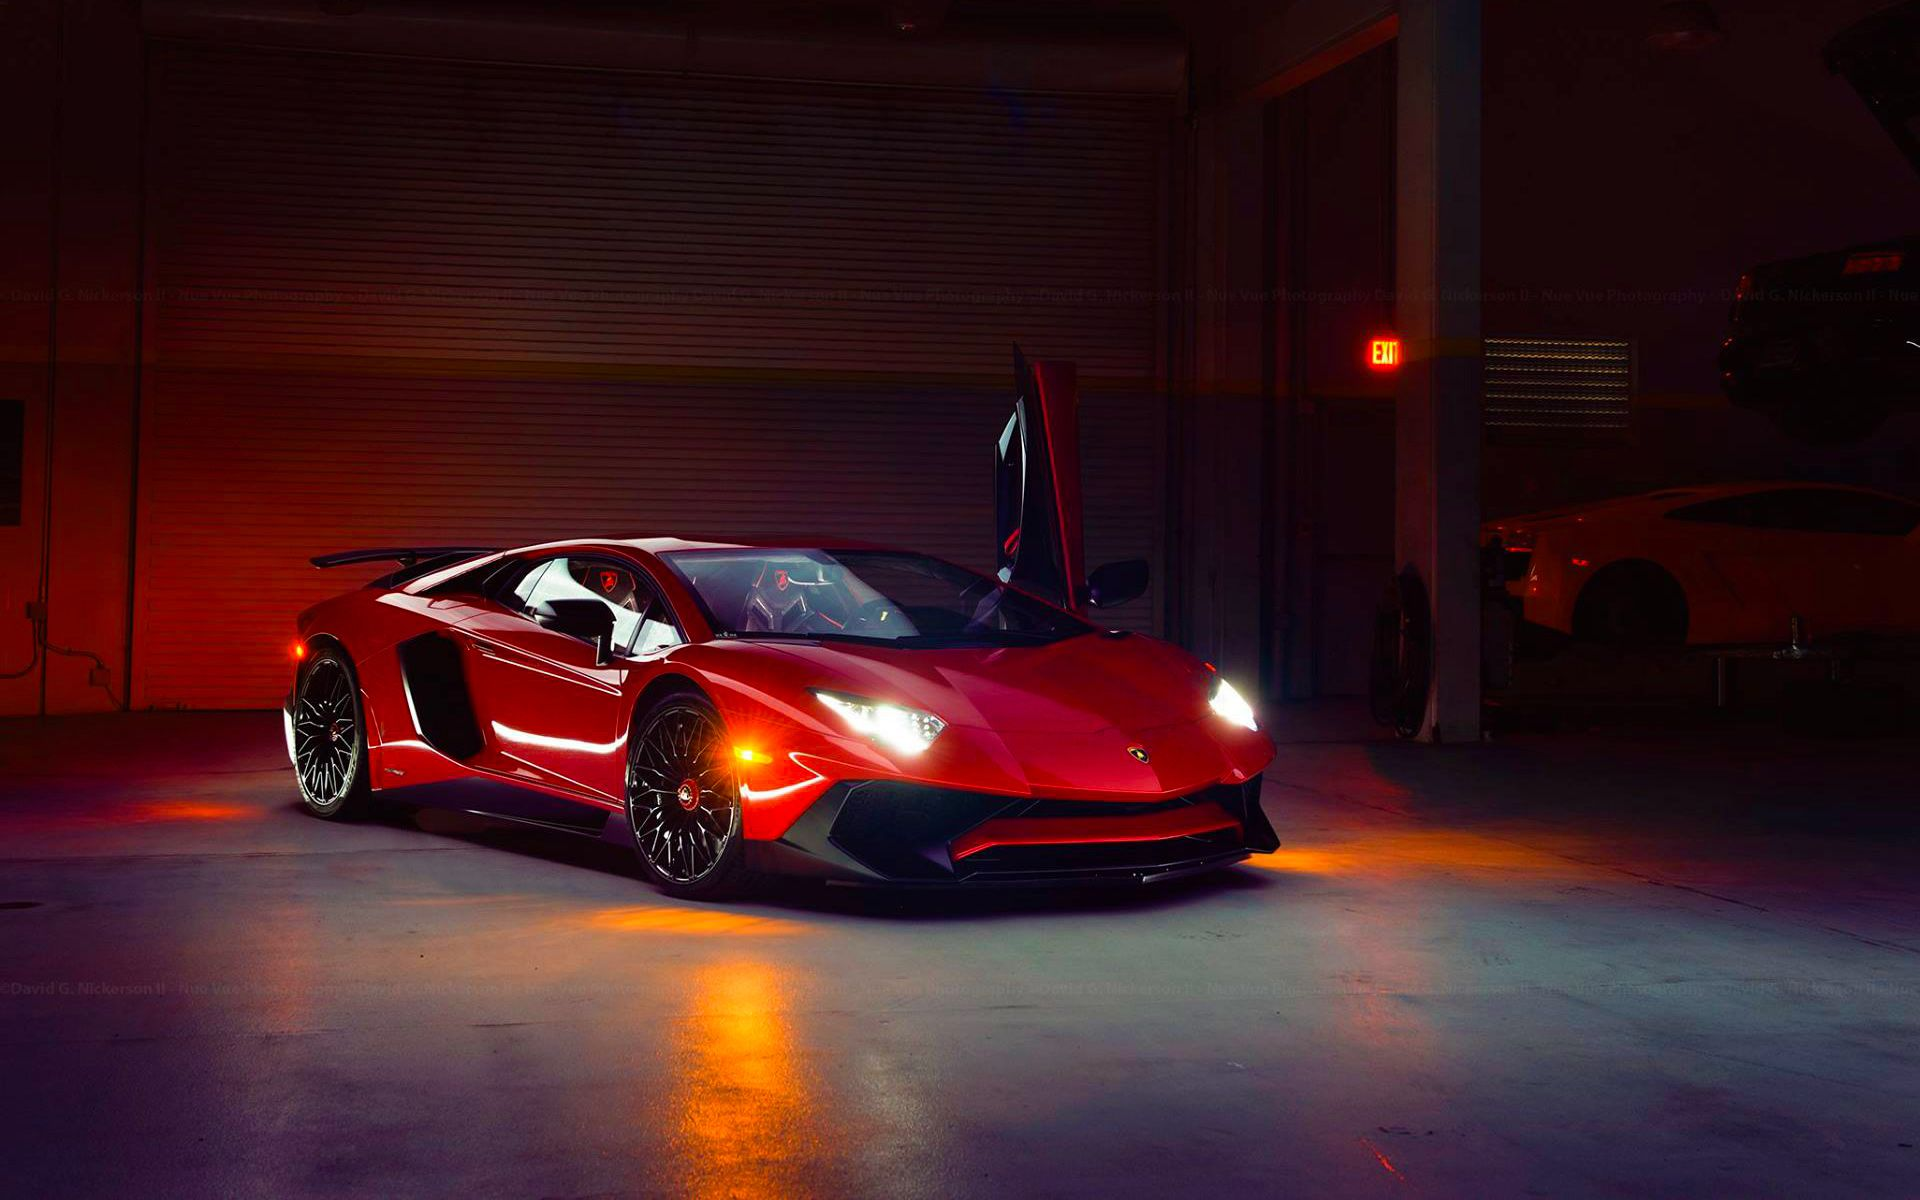 ADV Lamborghini Aventador Wallpaper HD Car Wallpapers 1920×1200 Aventador  Wallpaper (42 Wallpapers)